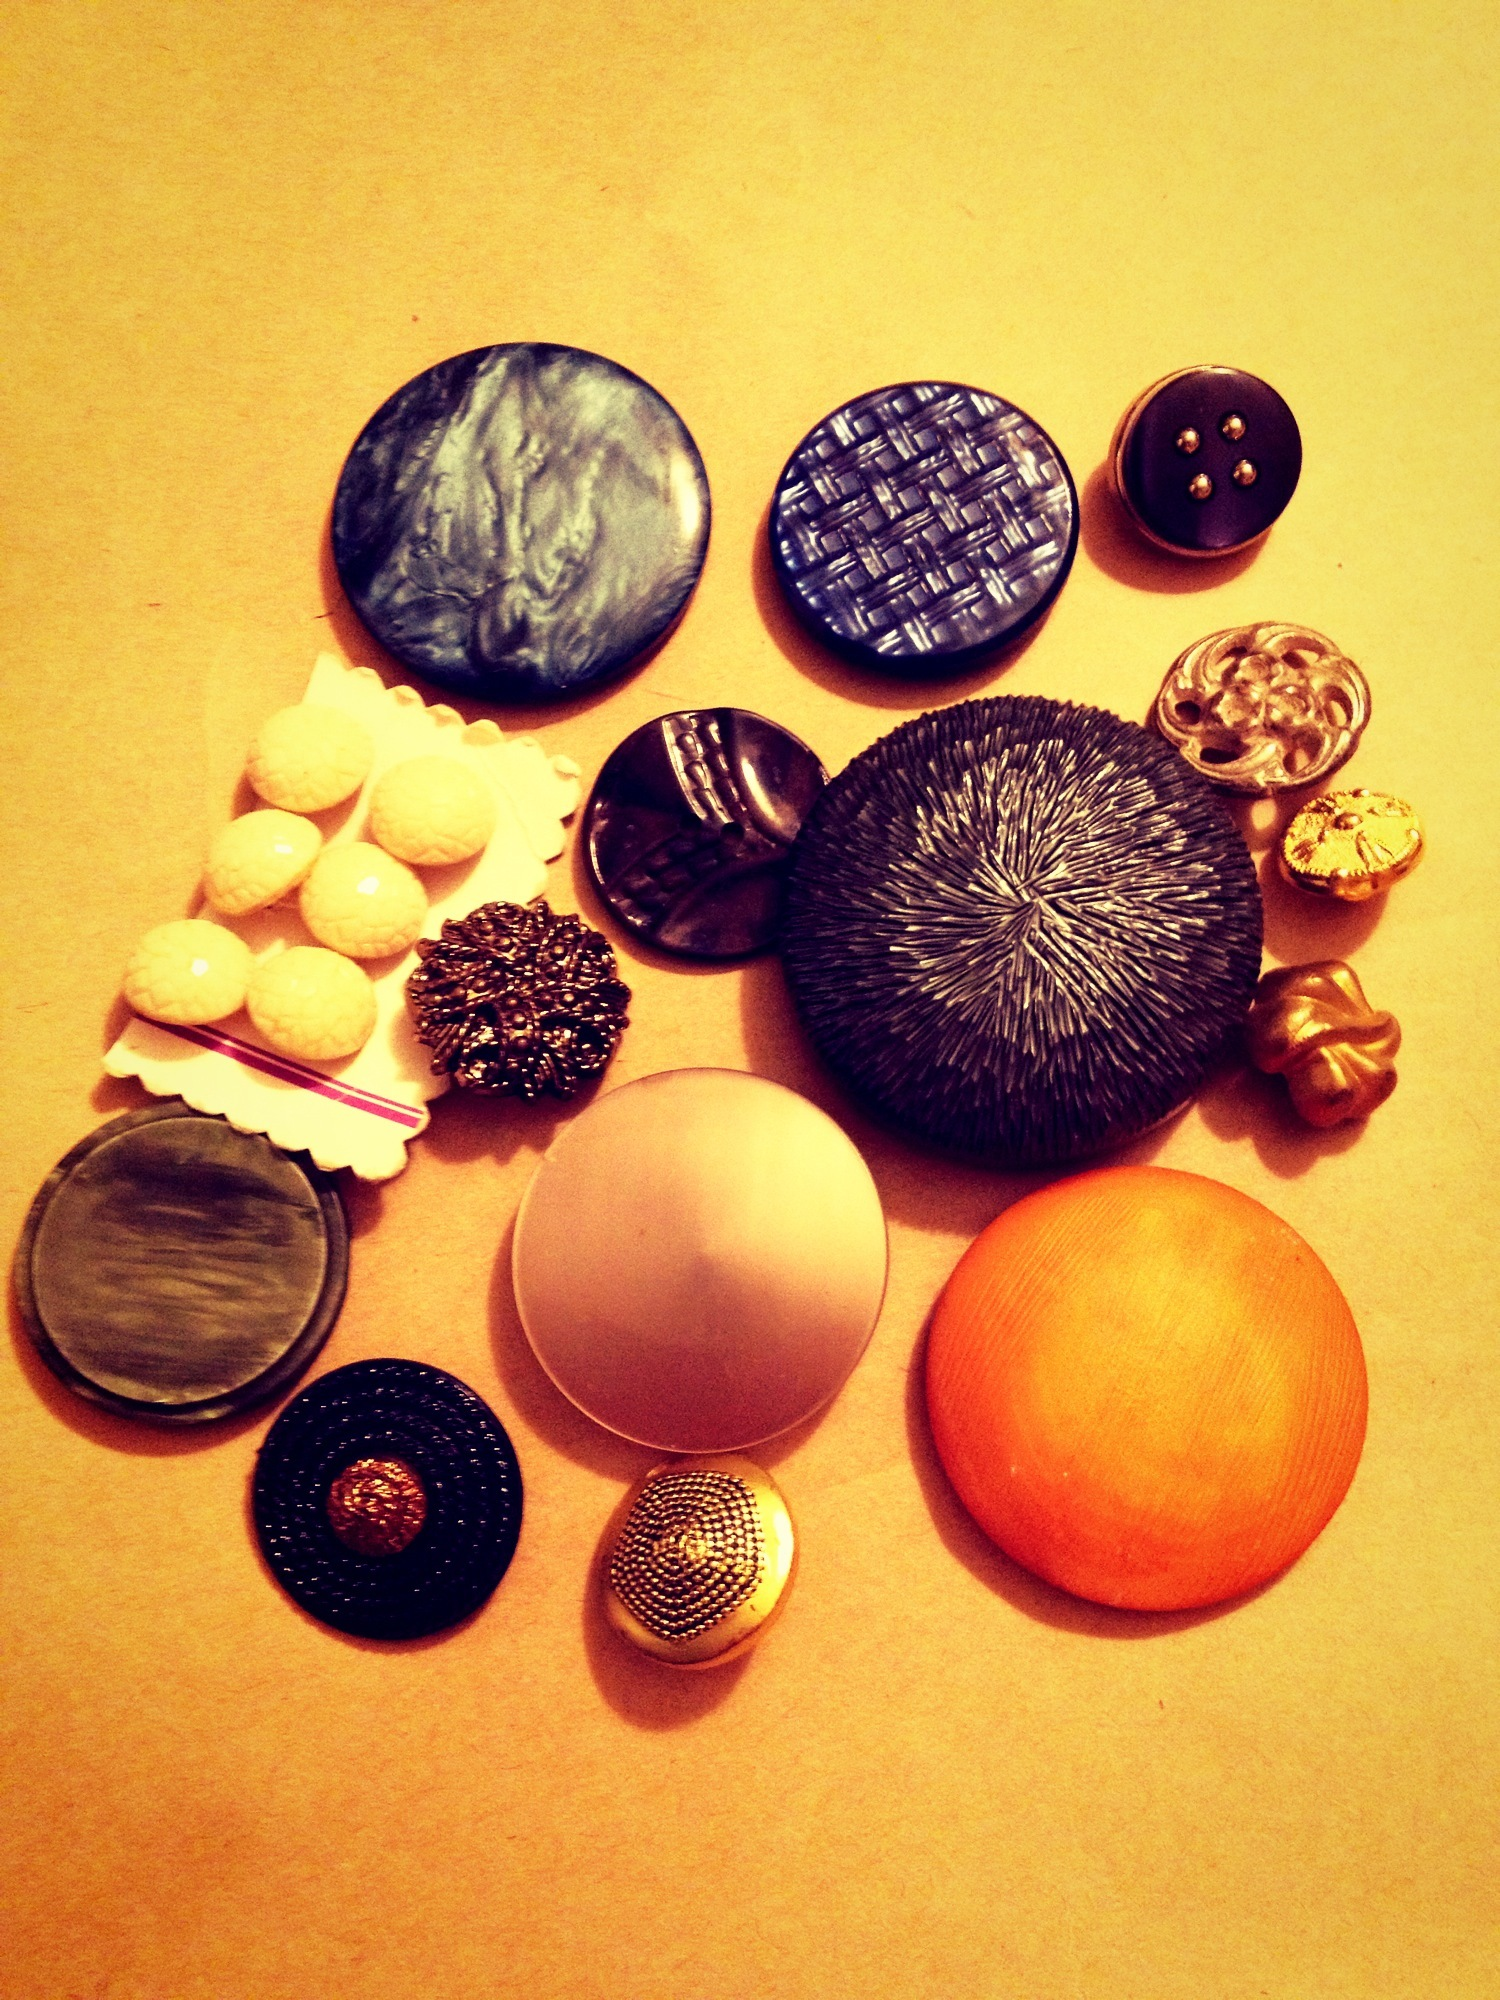 Some of my favourite vintage buttons, just waiting for the right project!